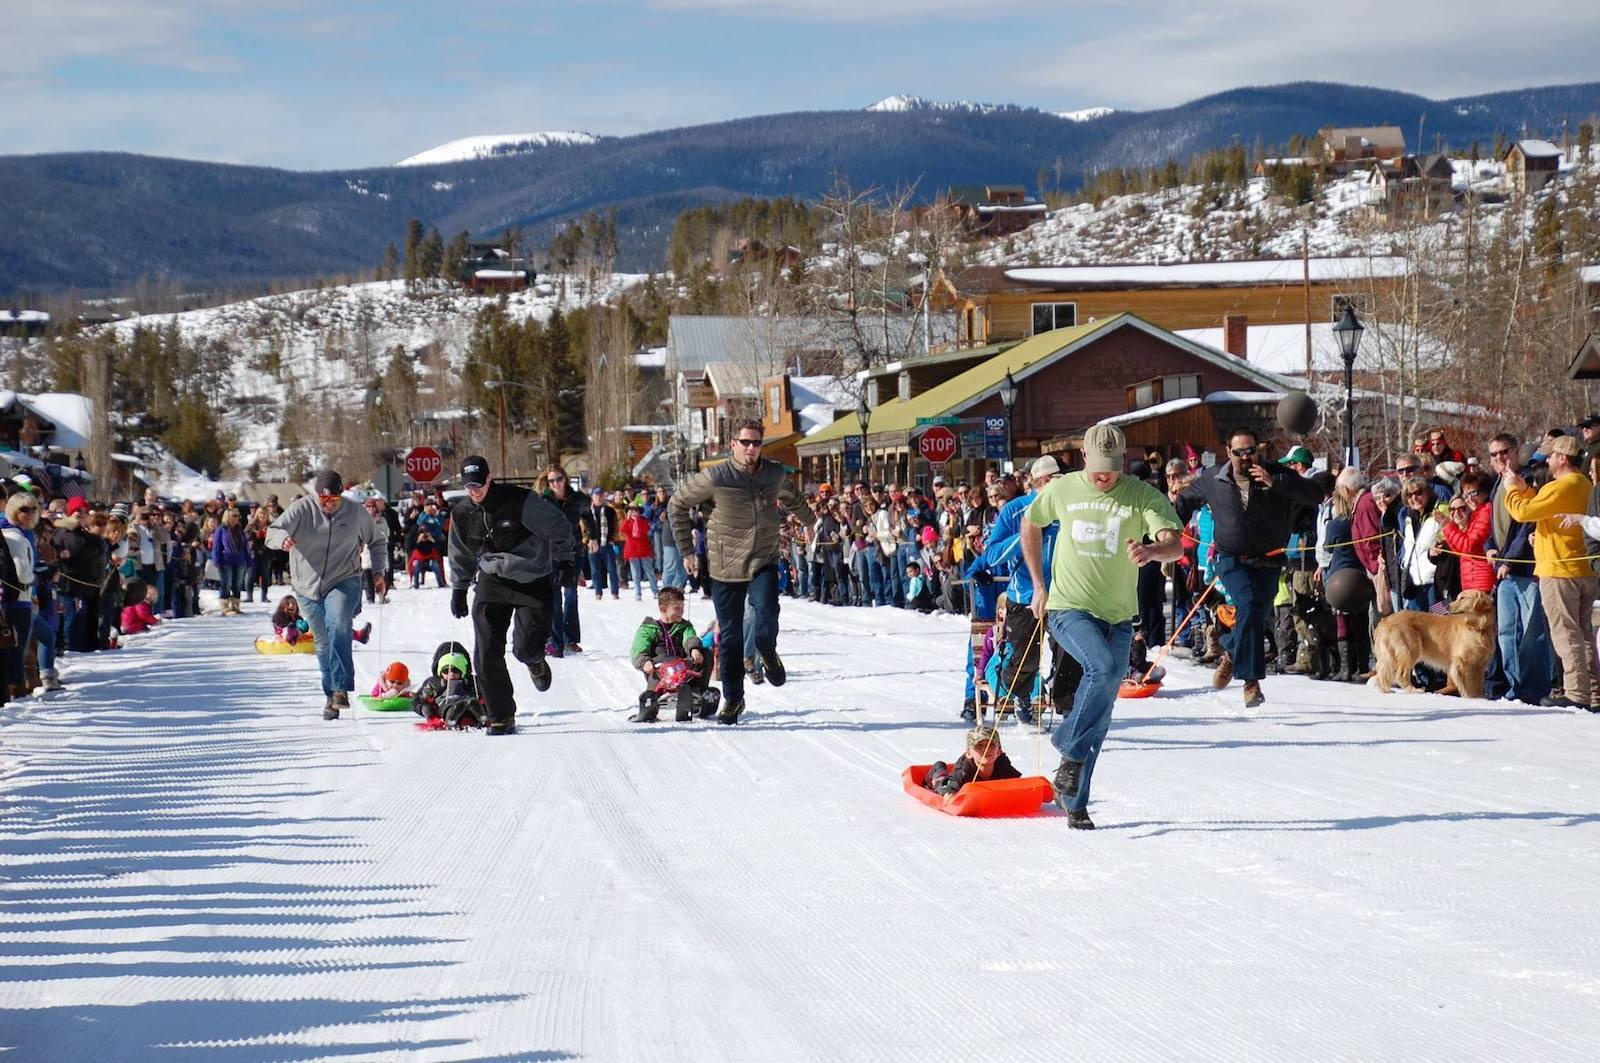 Image of people participating in the Winter Carnival in Grand Lake, Colorado